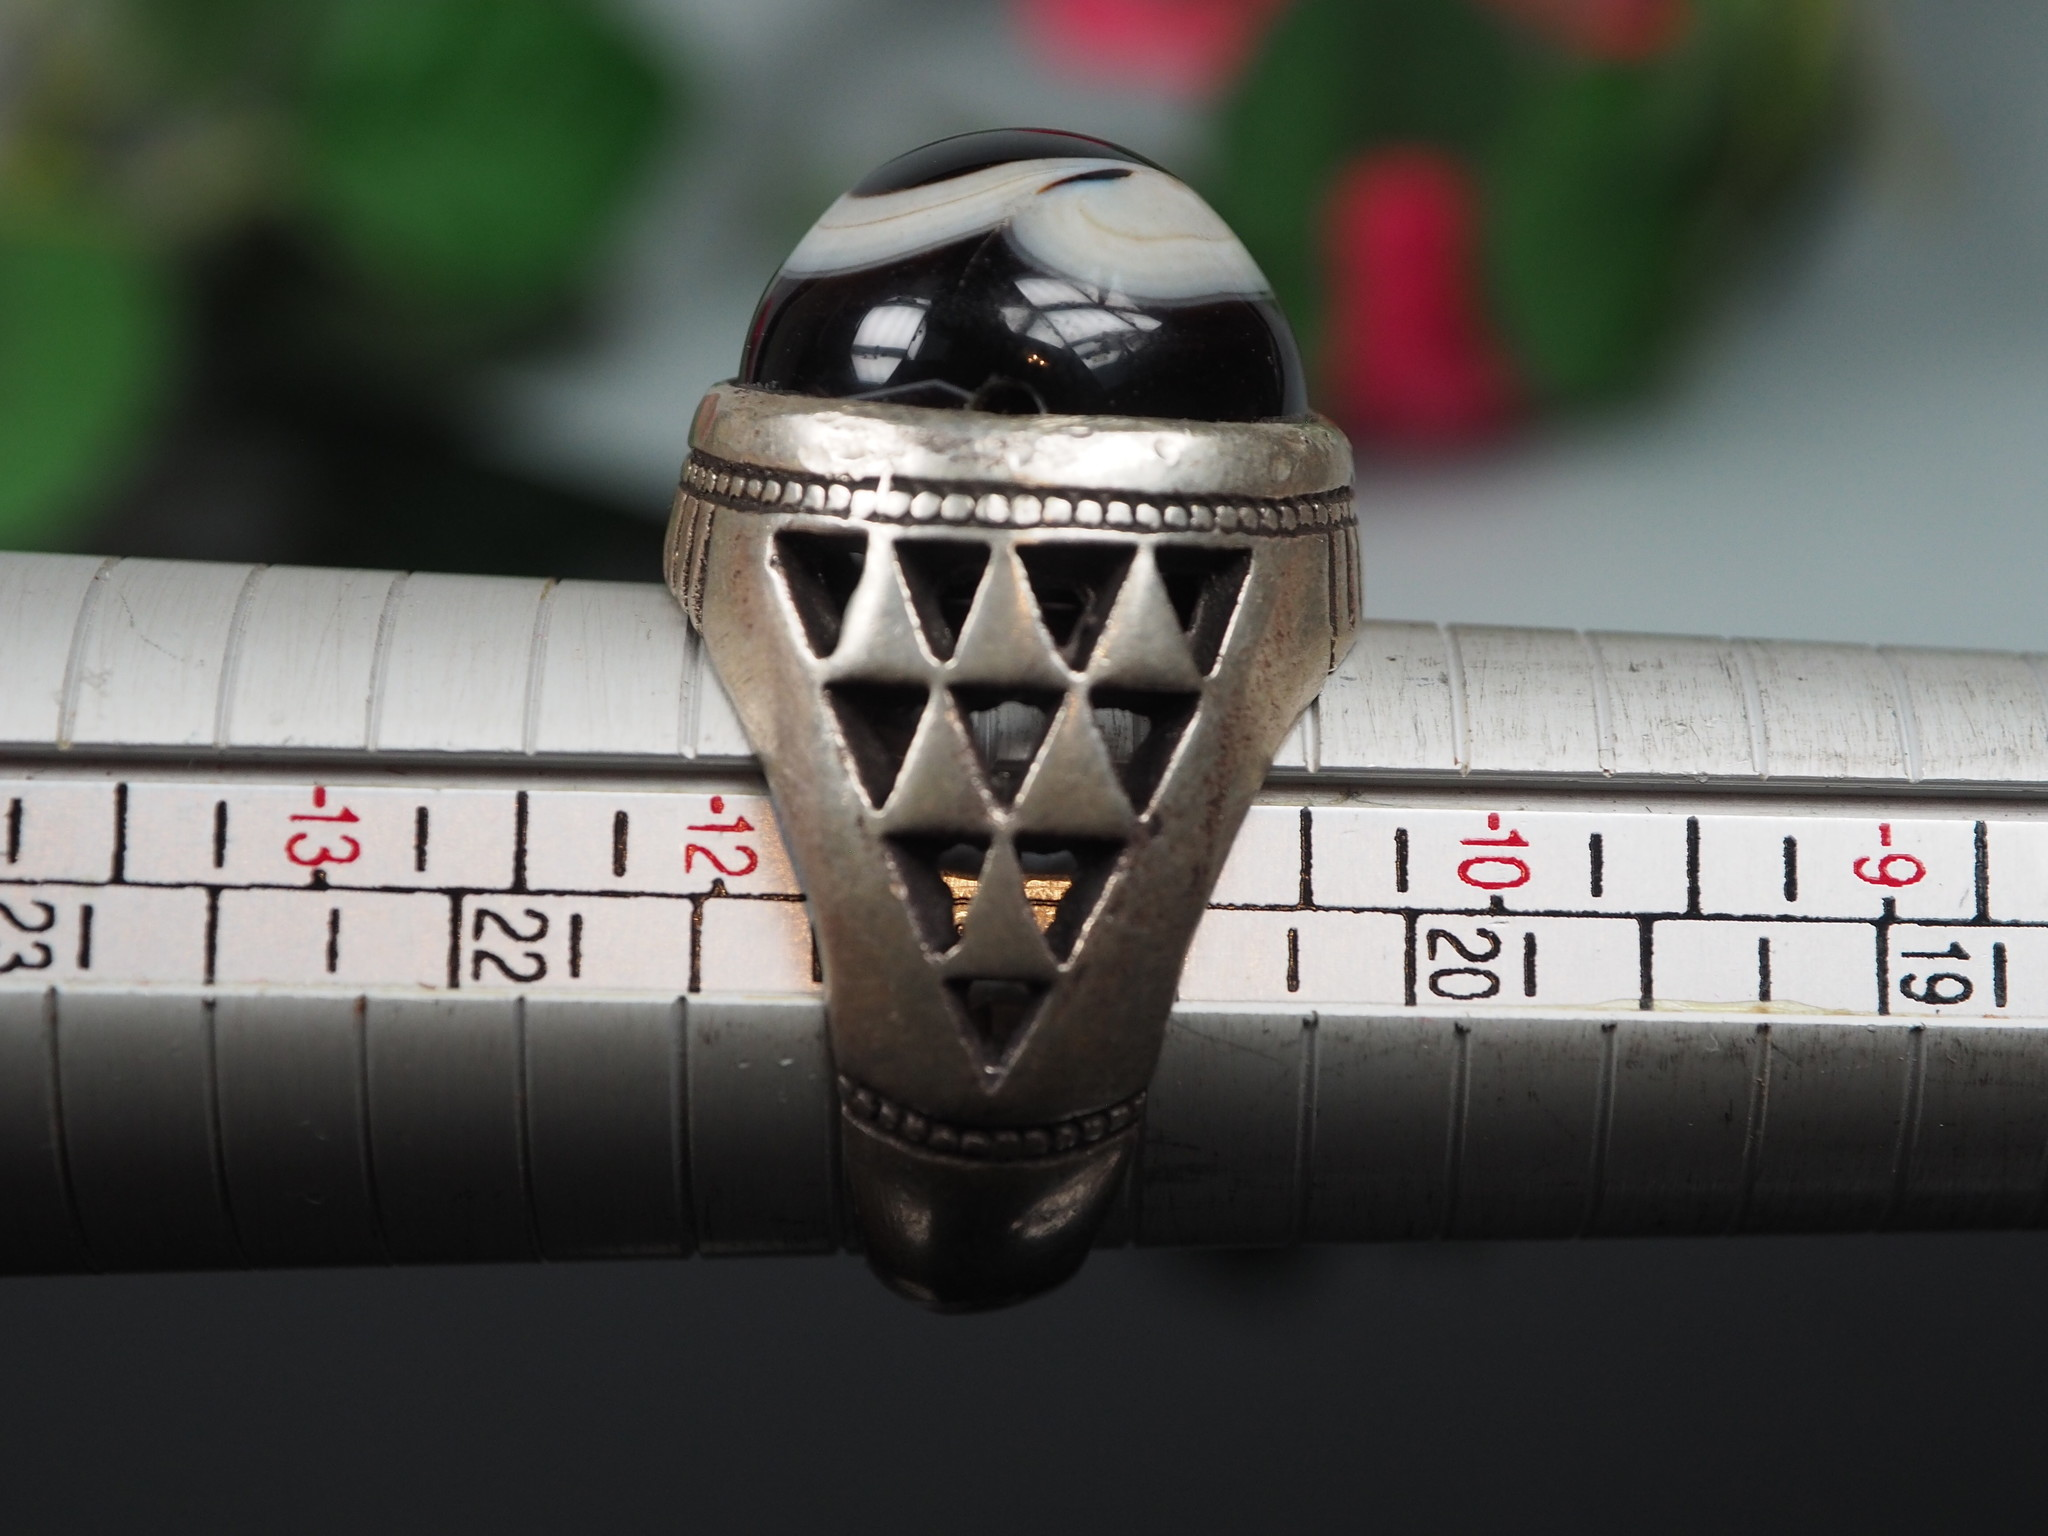 antique handmade Silver eye agate stone turkmen statement AQEEQ ring from Afghanistan No:WL21/3